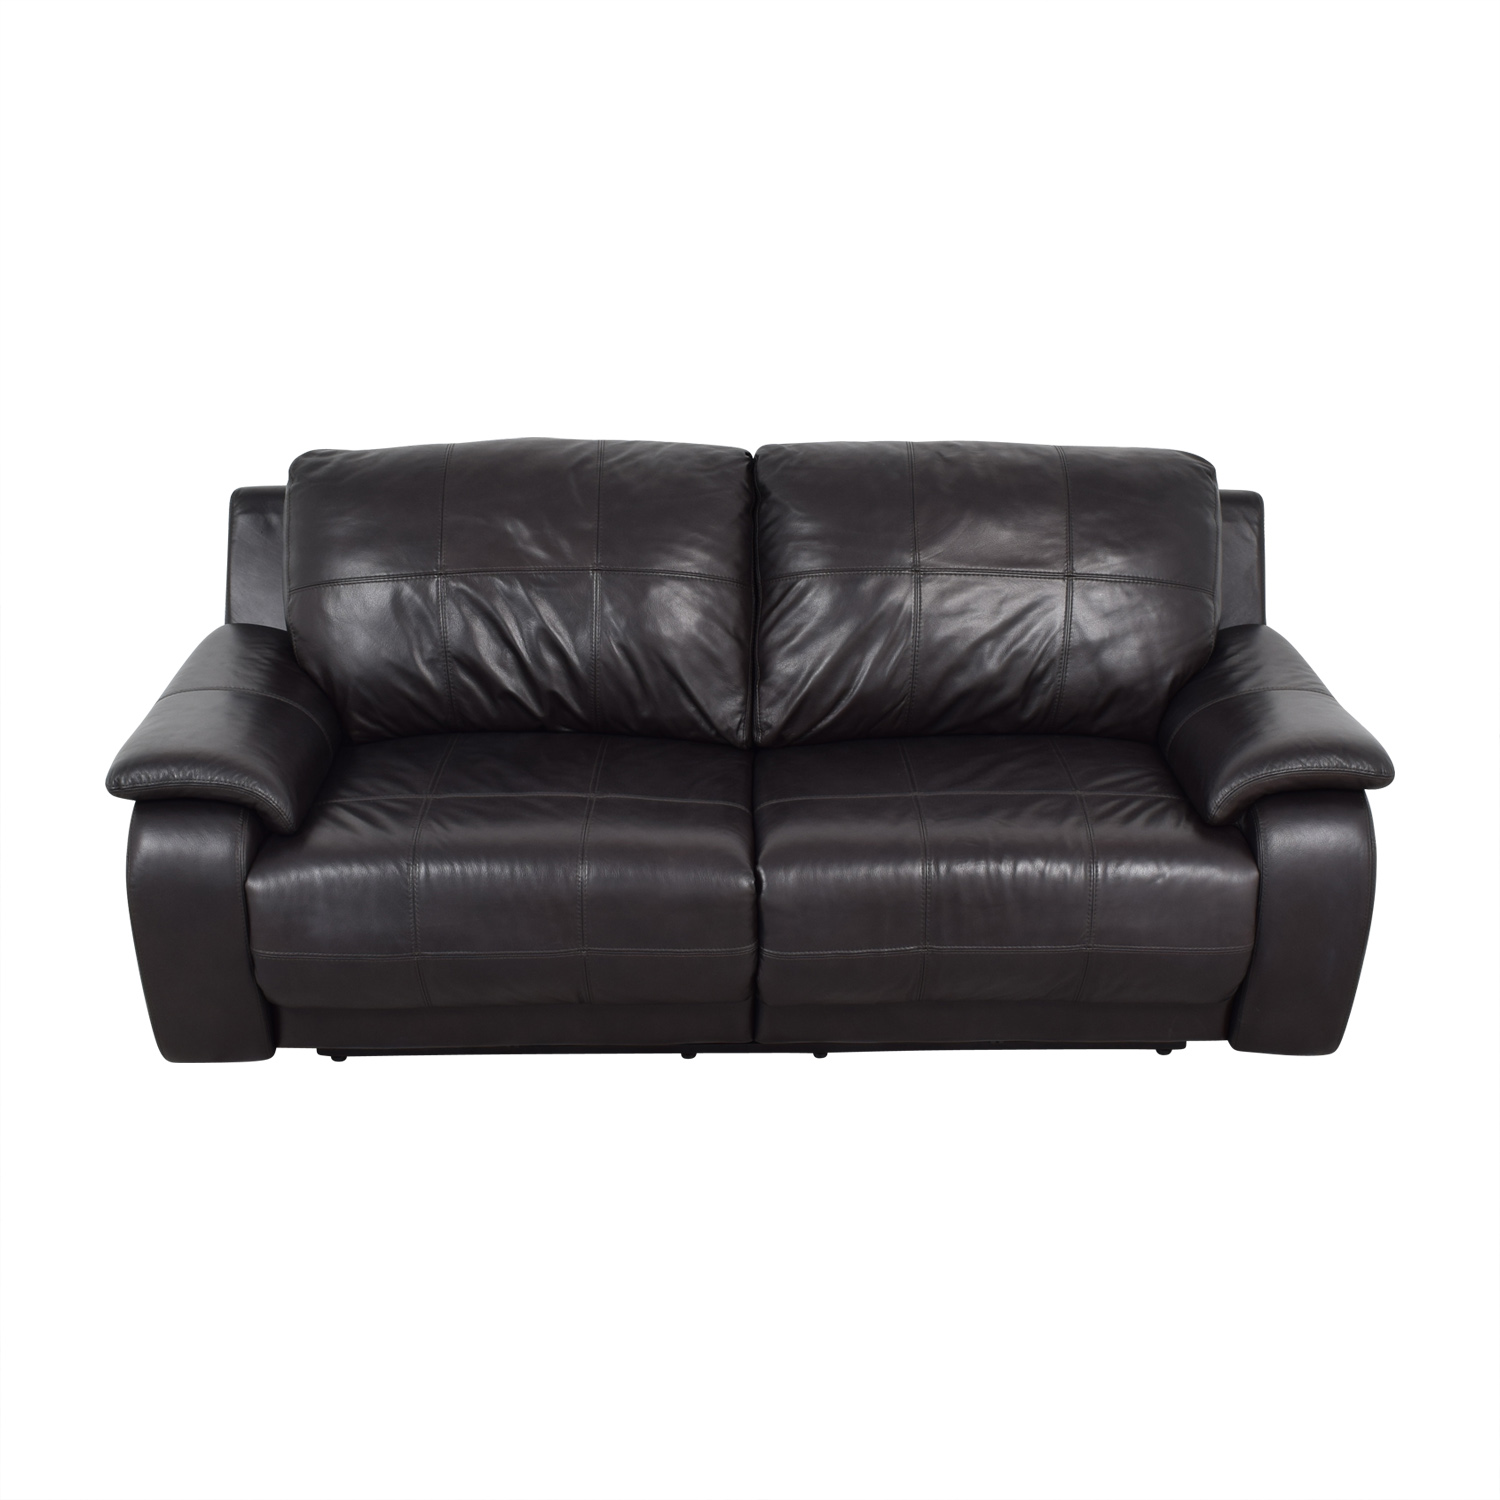 Raymour & Flanigan Black Two-Cushion Power Reclining Sofa / Chairs